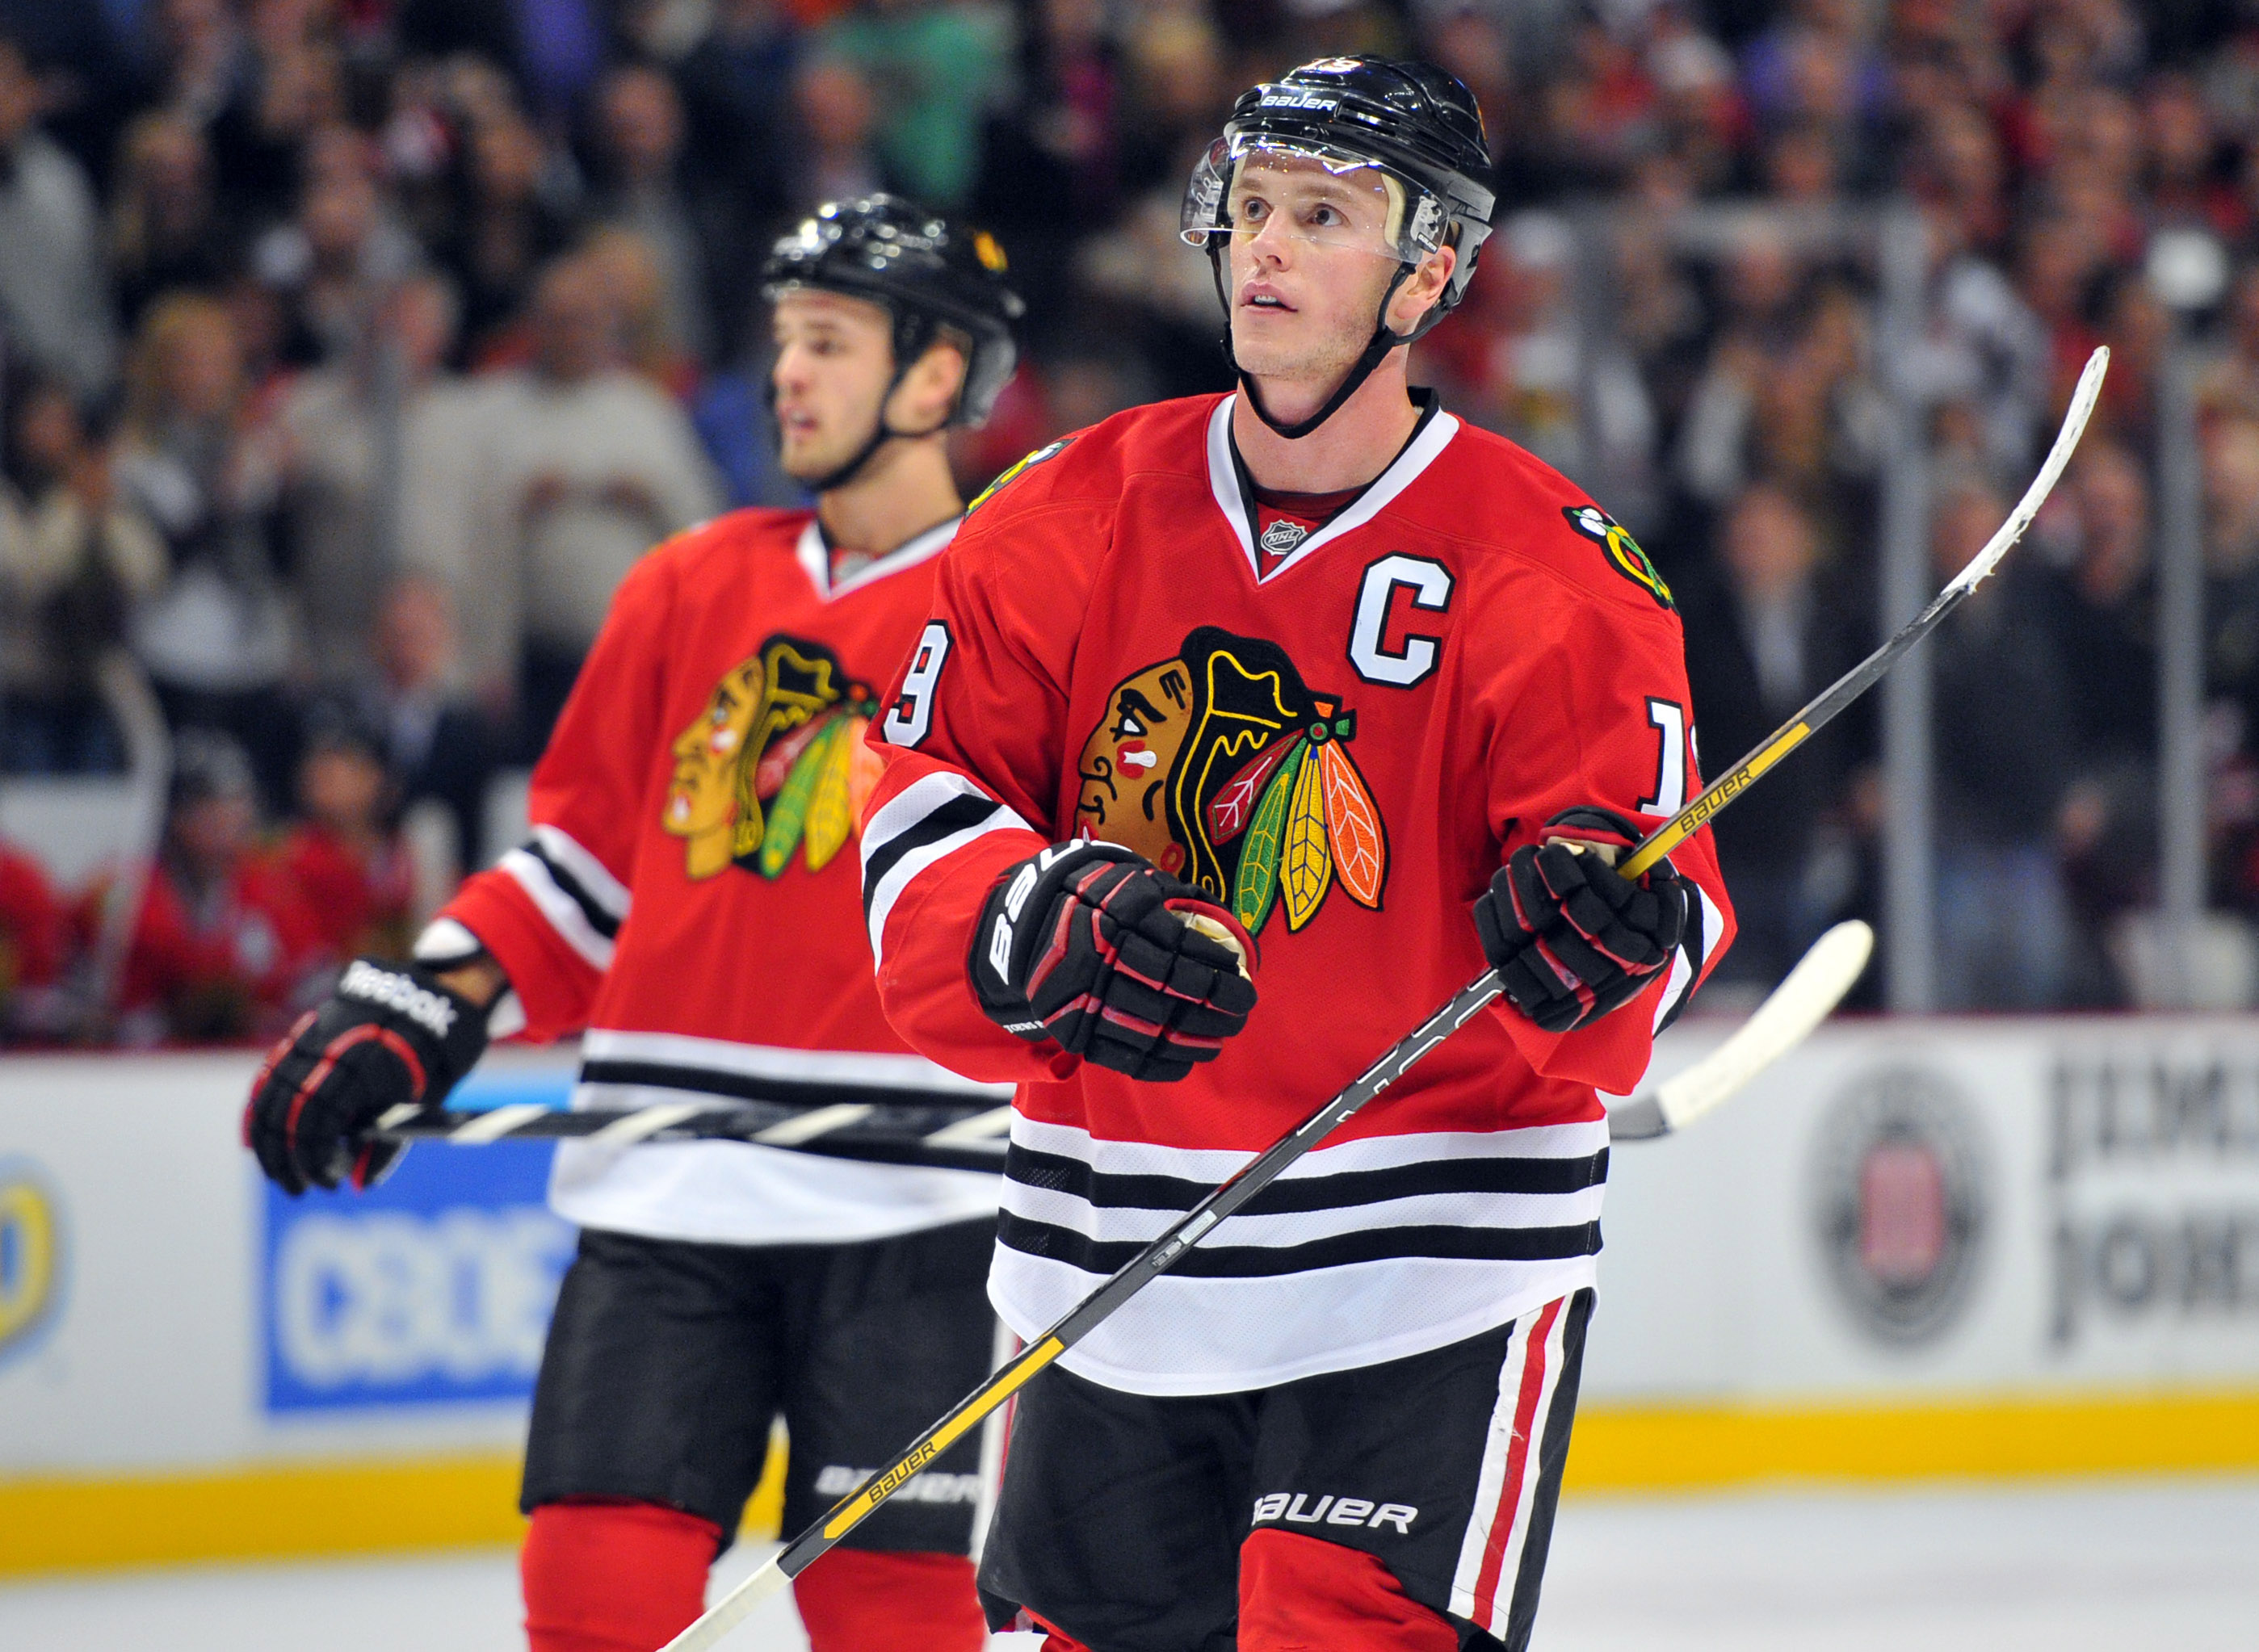 Chicago's star players, such as captain Jonathan Toews, have also been its best players. (USA Today)